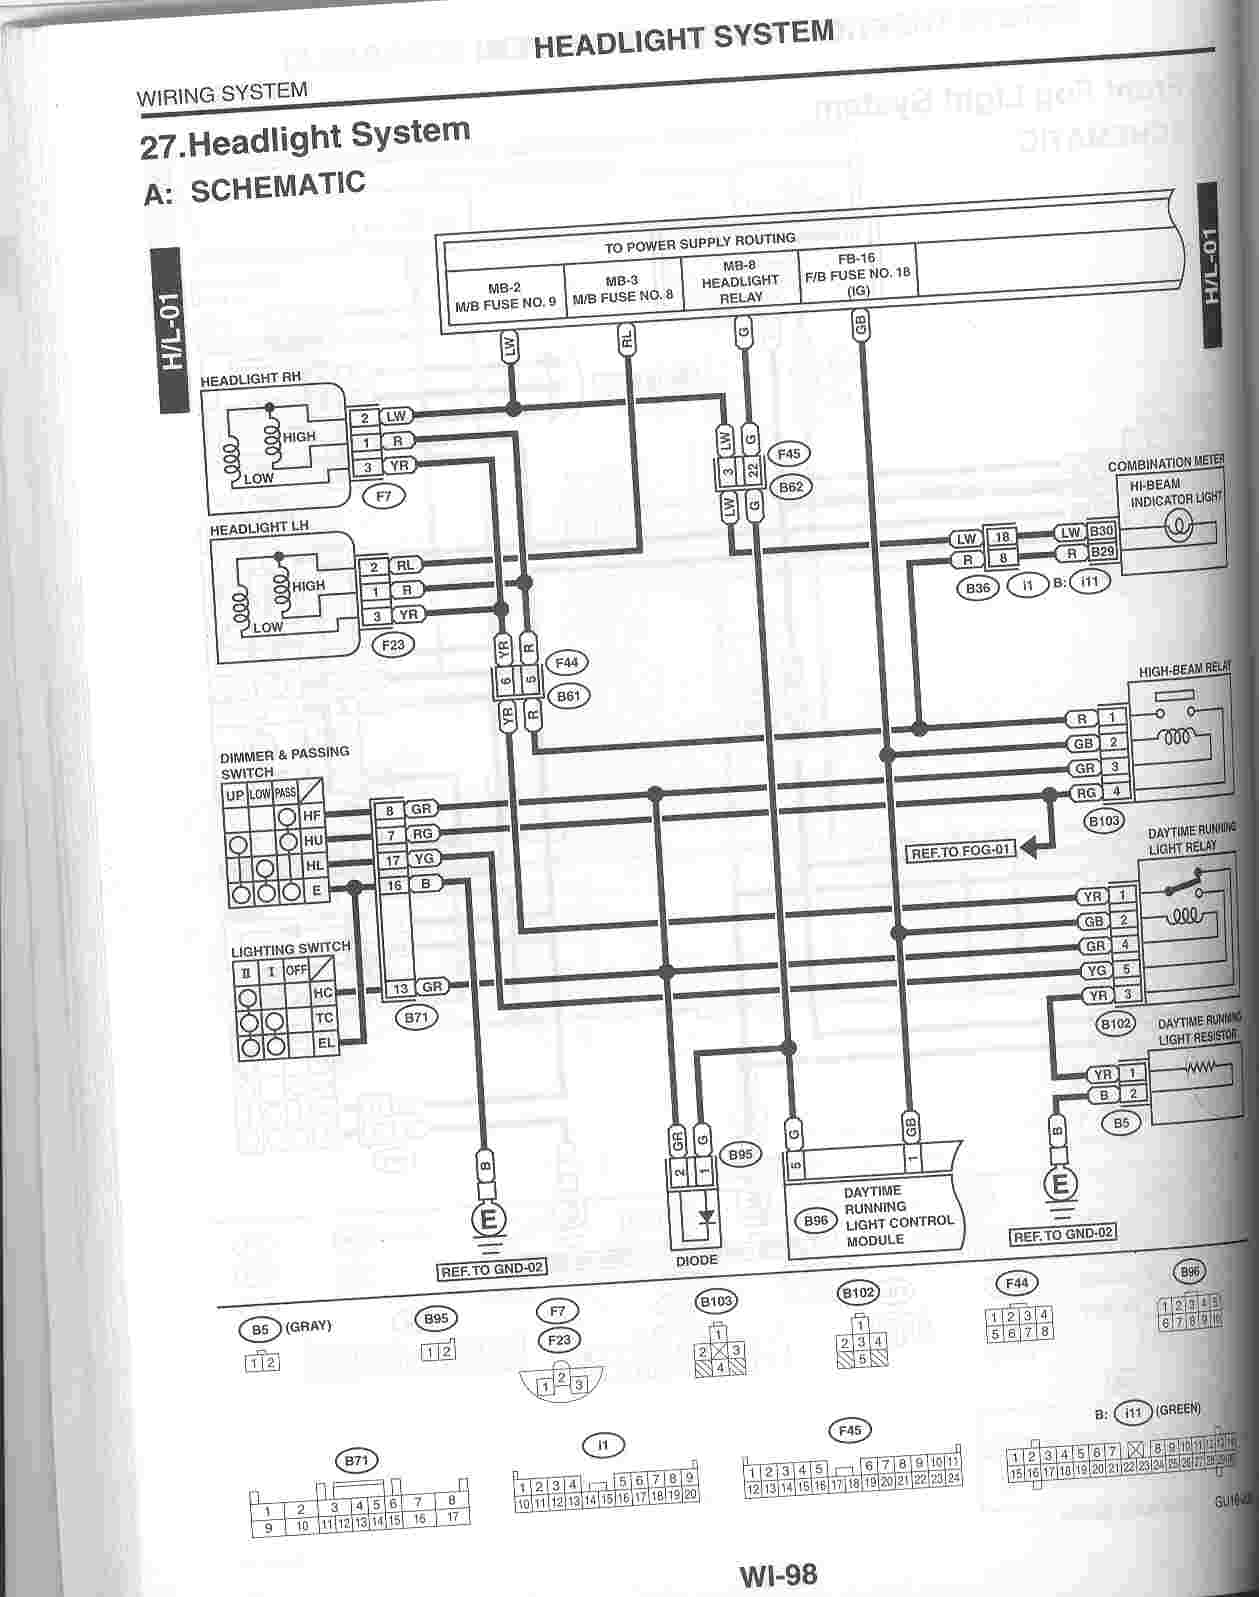 2002 Subaru Outback Stereo Wiring Diagram Kubota B7100 Parts Diagram Begeboy Wiring Diagram Source